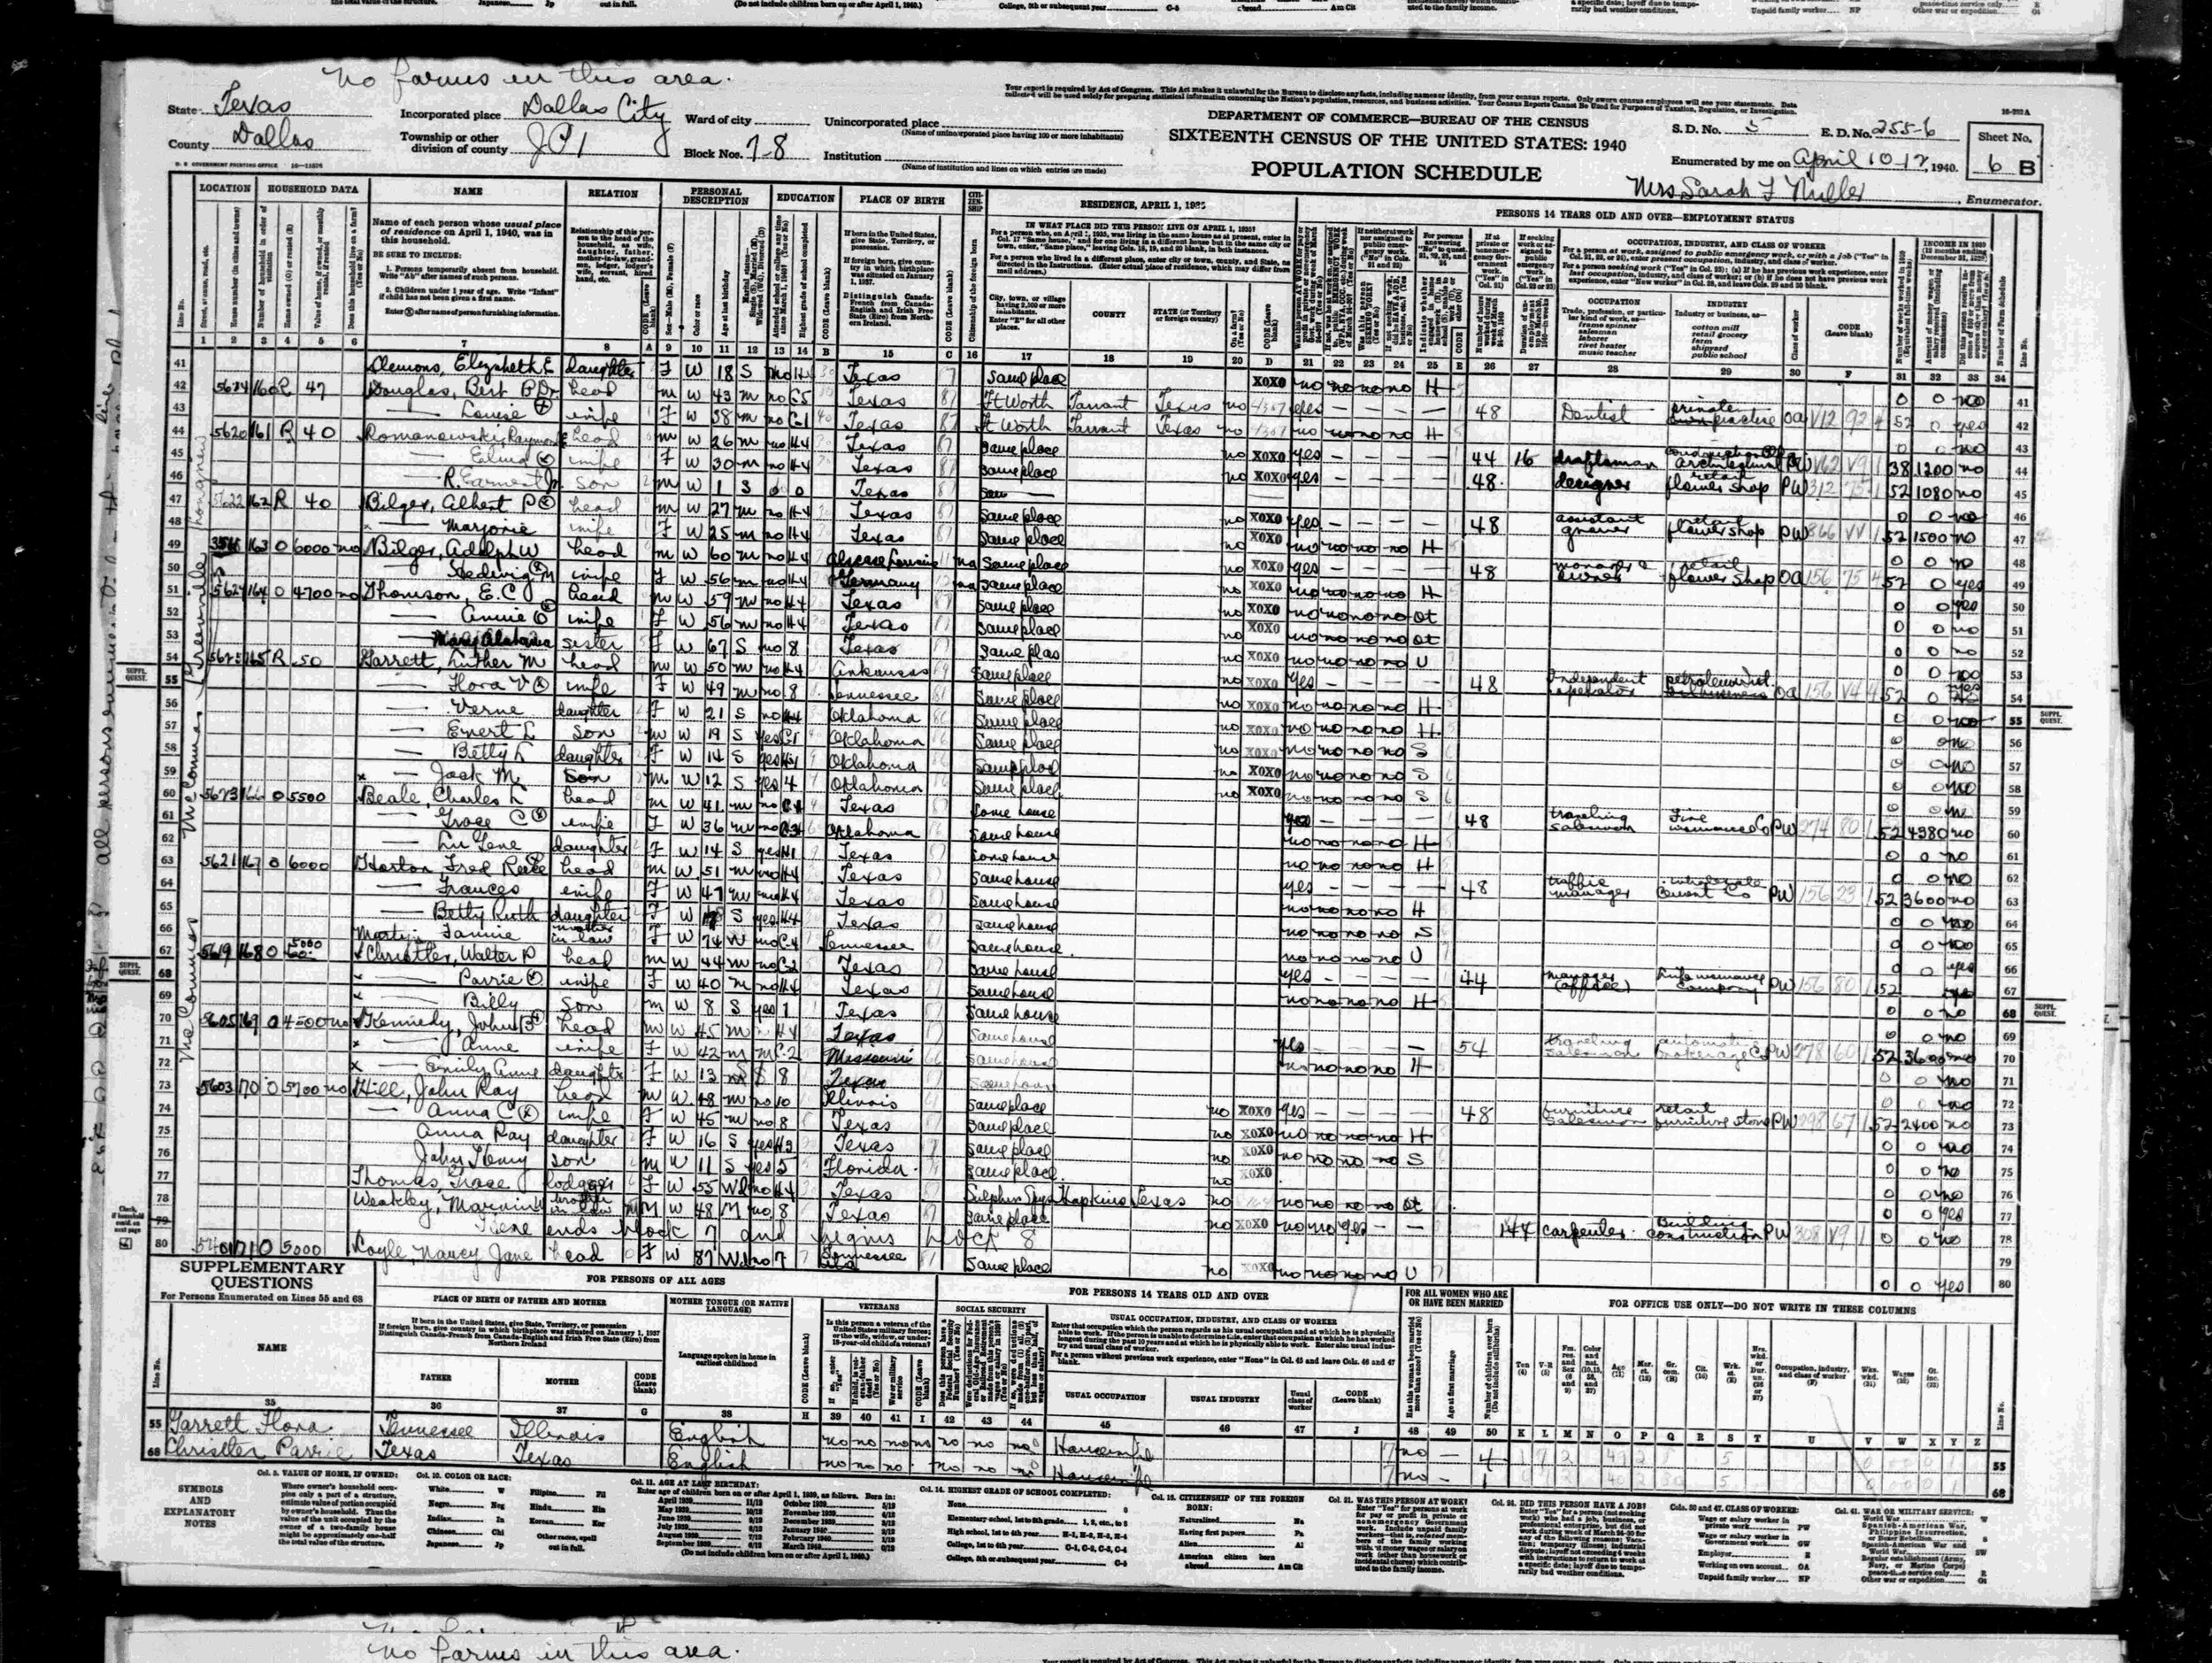 1940 CENSUS REPORT OF THE HILL FAMILY